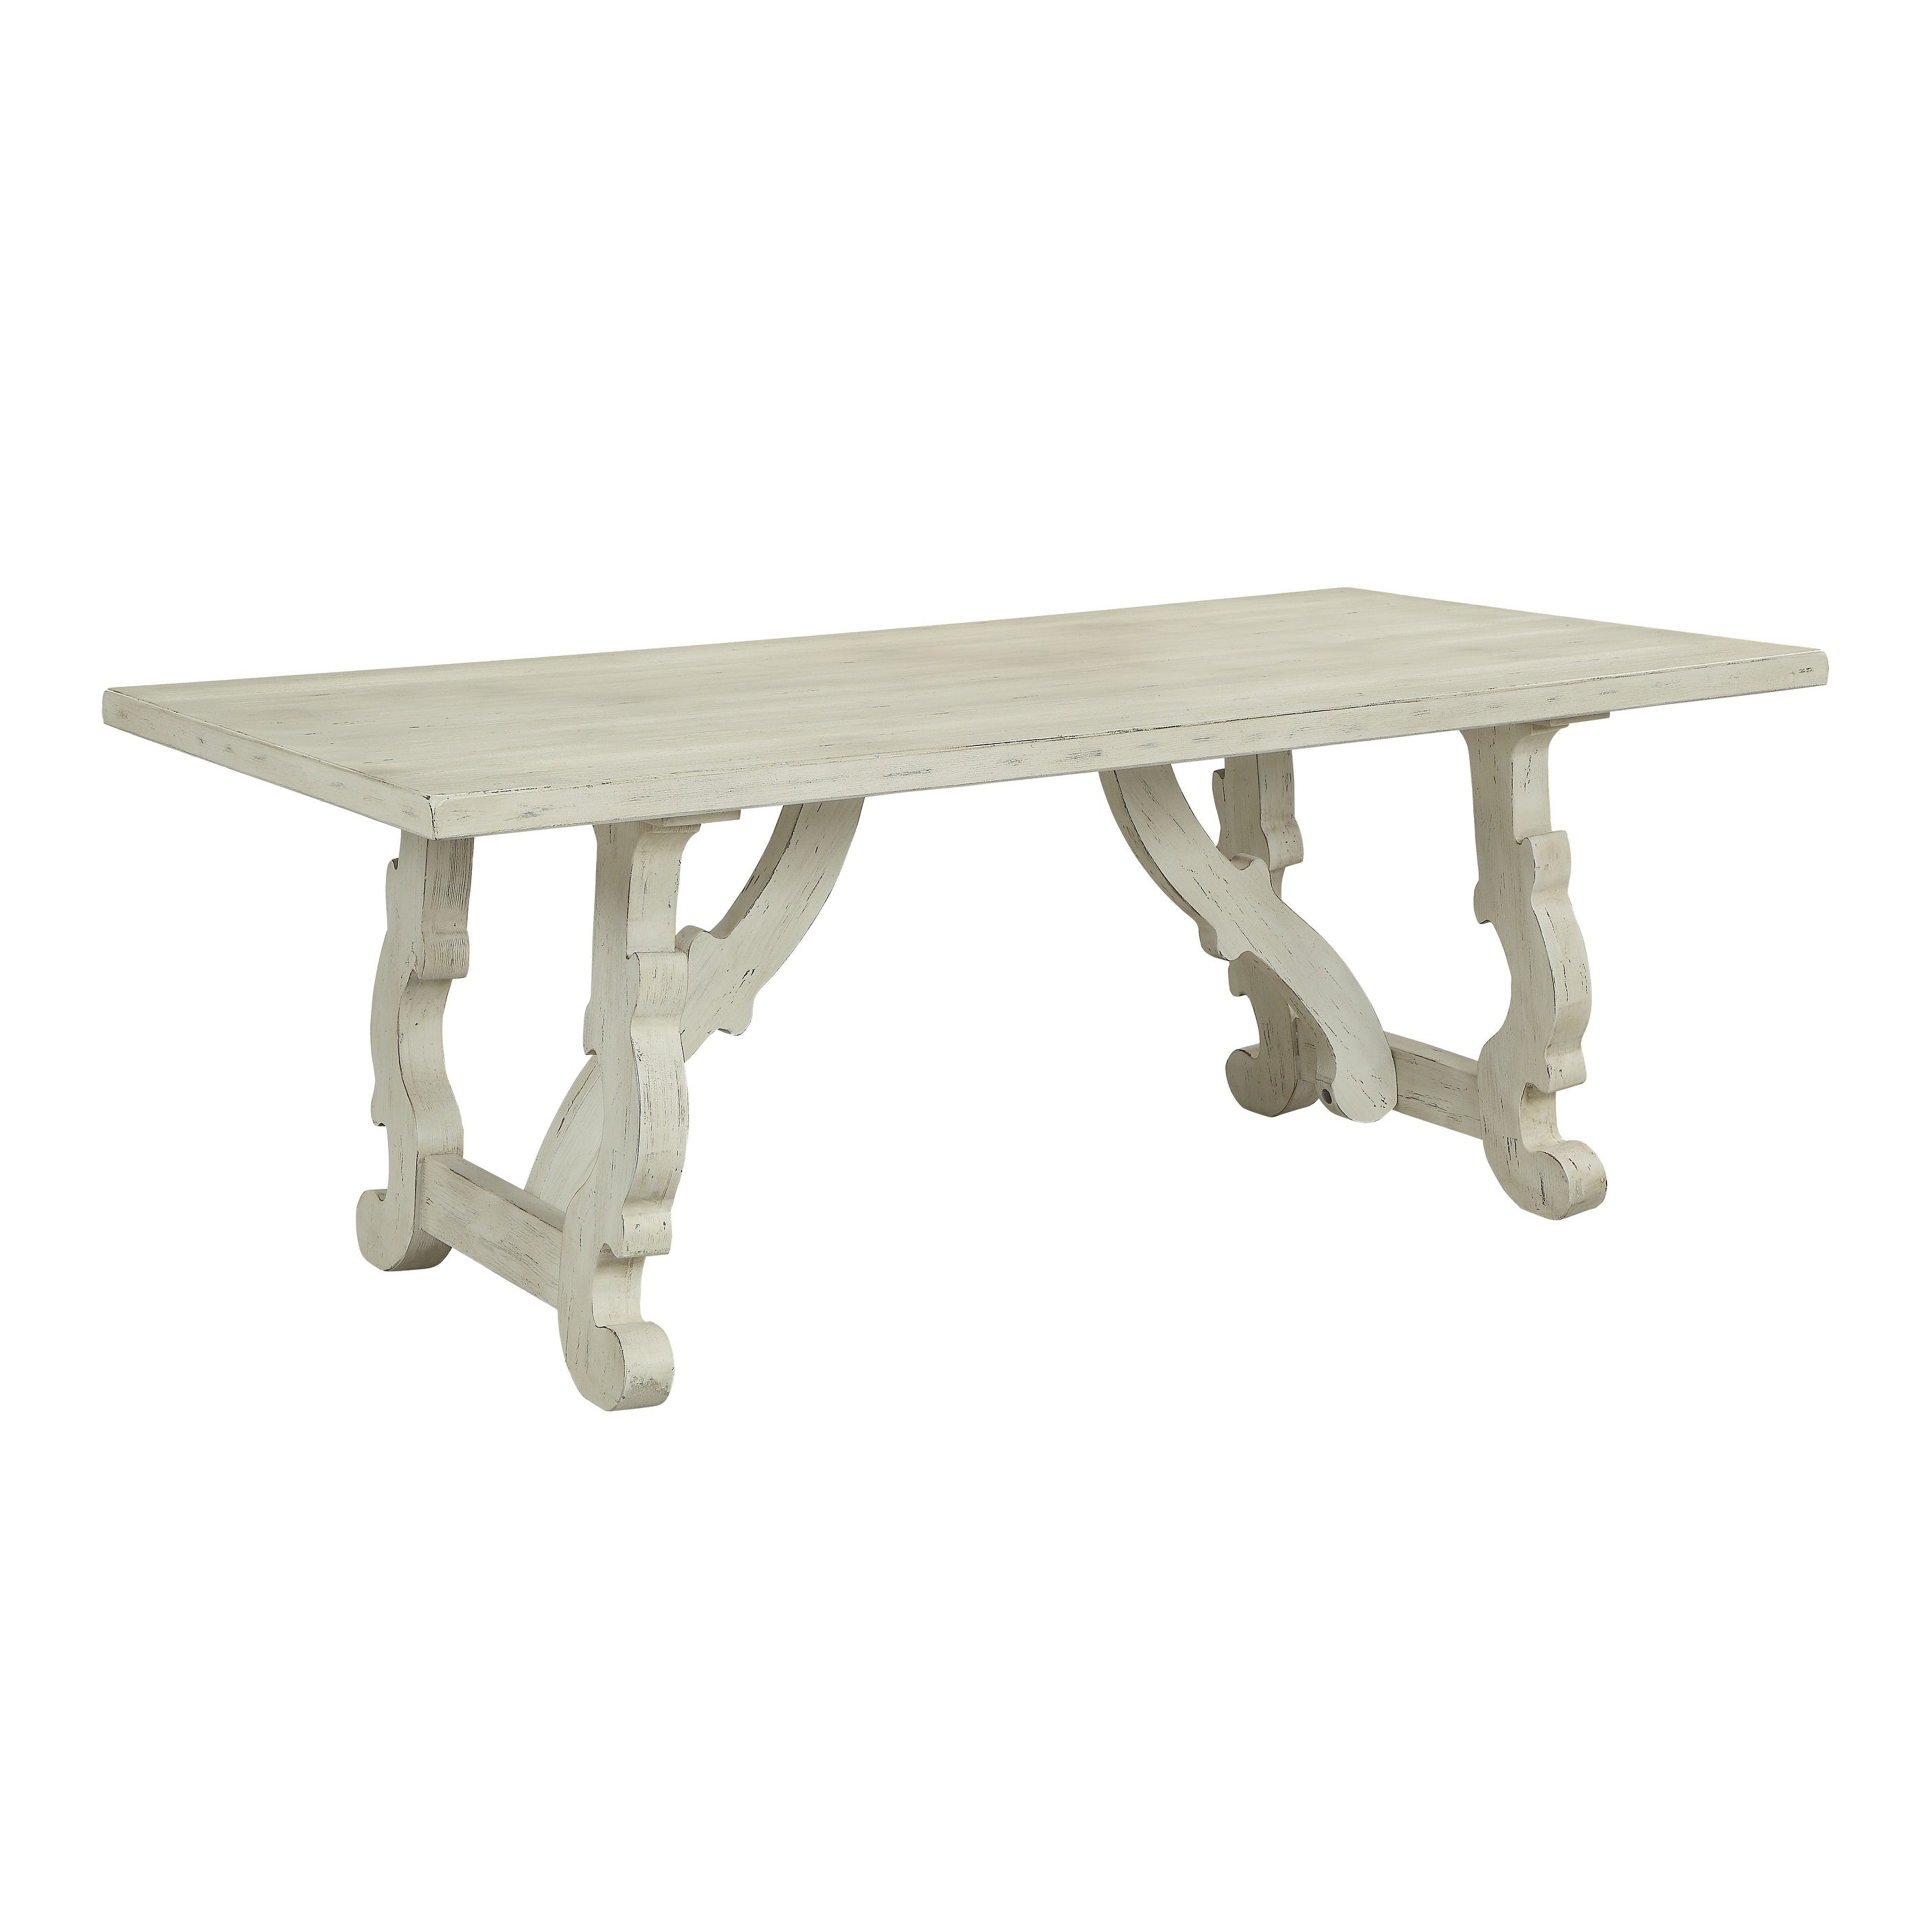 Treasure Trove Orchard Park White Rub Large Dining Table